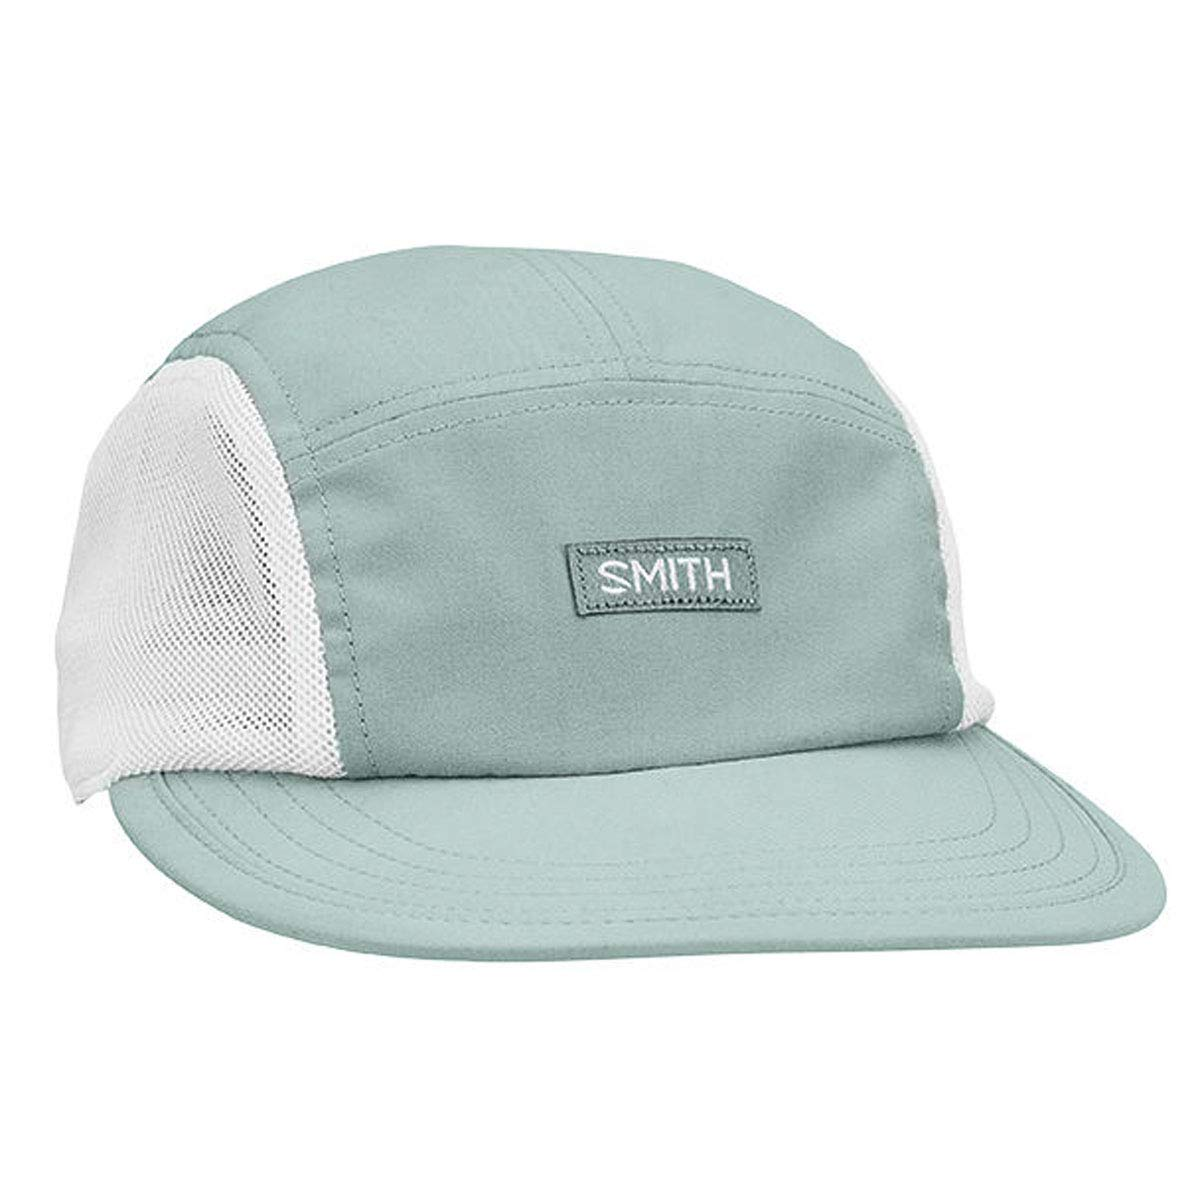 dfd4fcaead2 Smith Optics Men s Zephyr Mesh 5 Panel Adjustable Hat